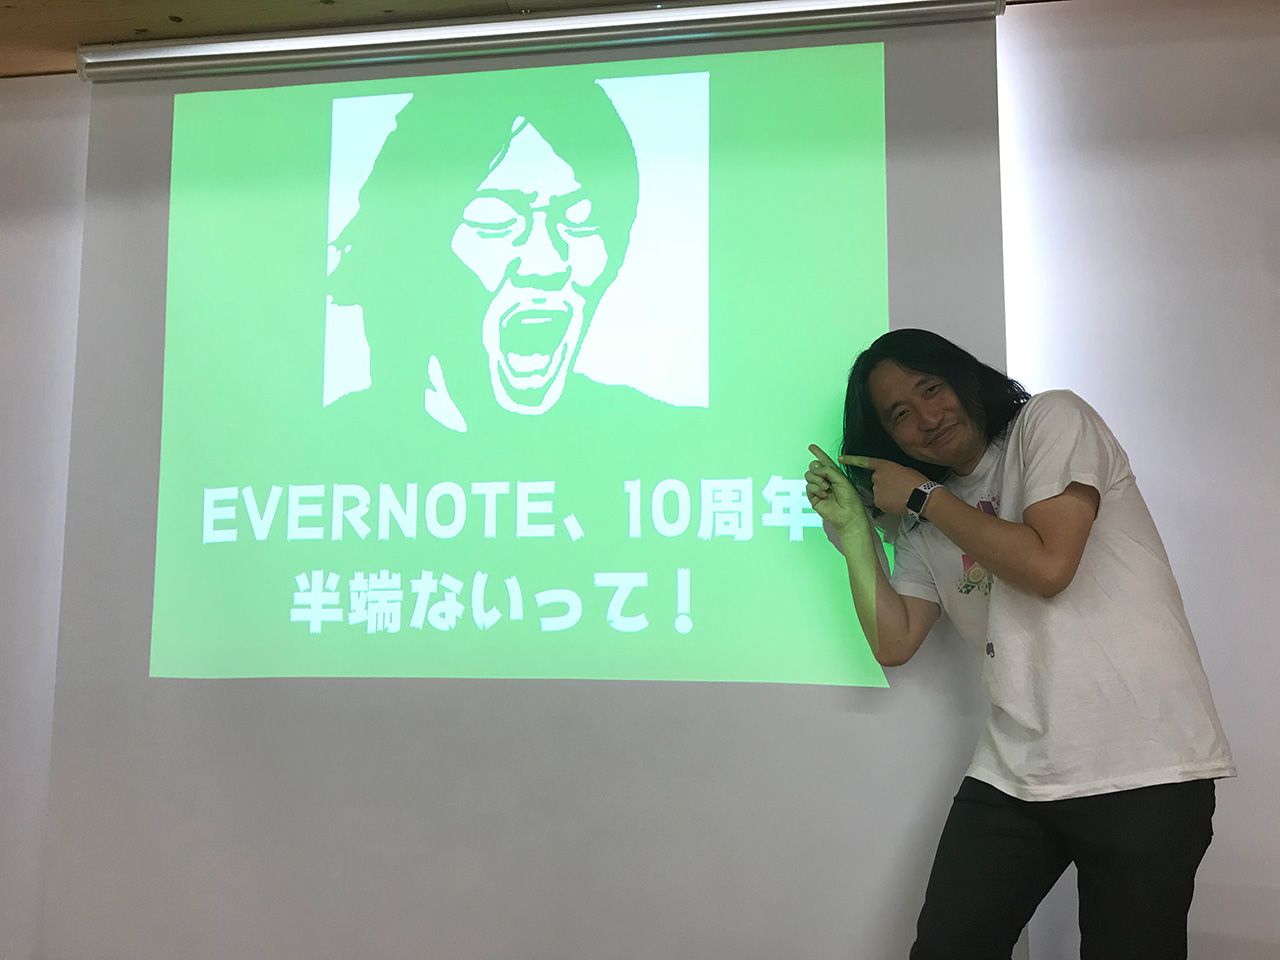 Evernoteの達人が登壇した「Evernote User Meetup Fukuoka」!